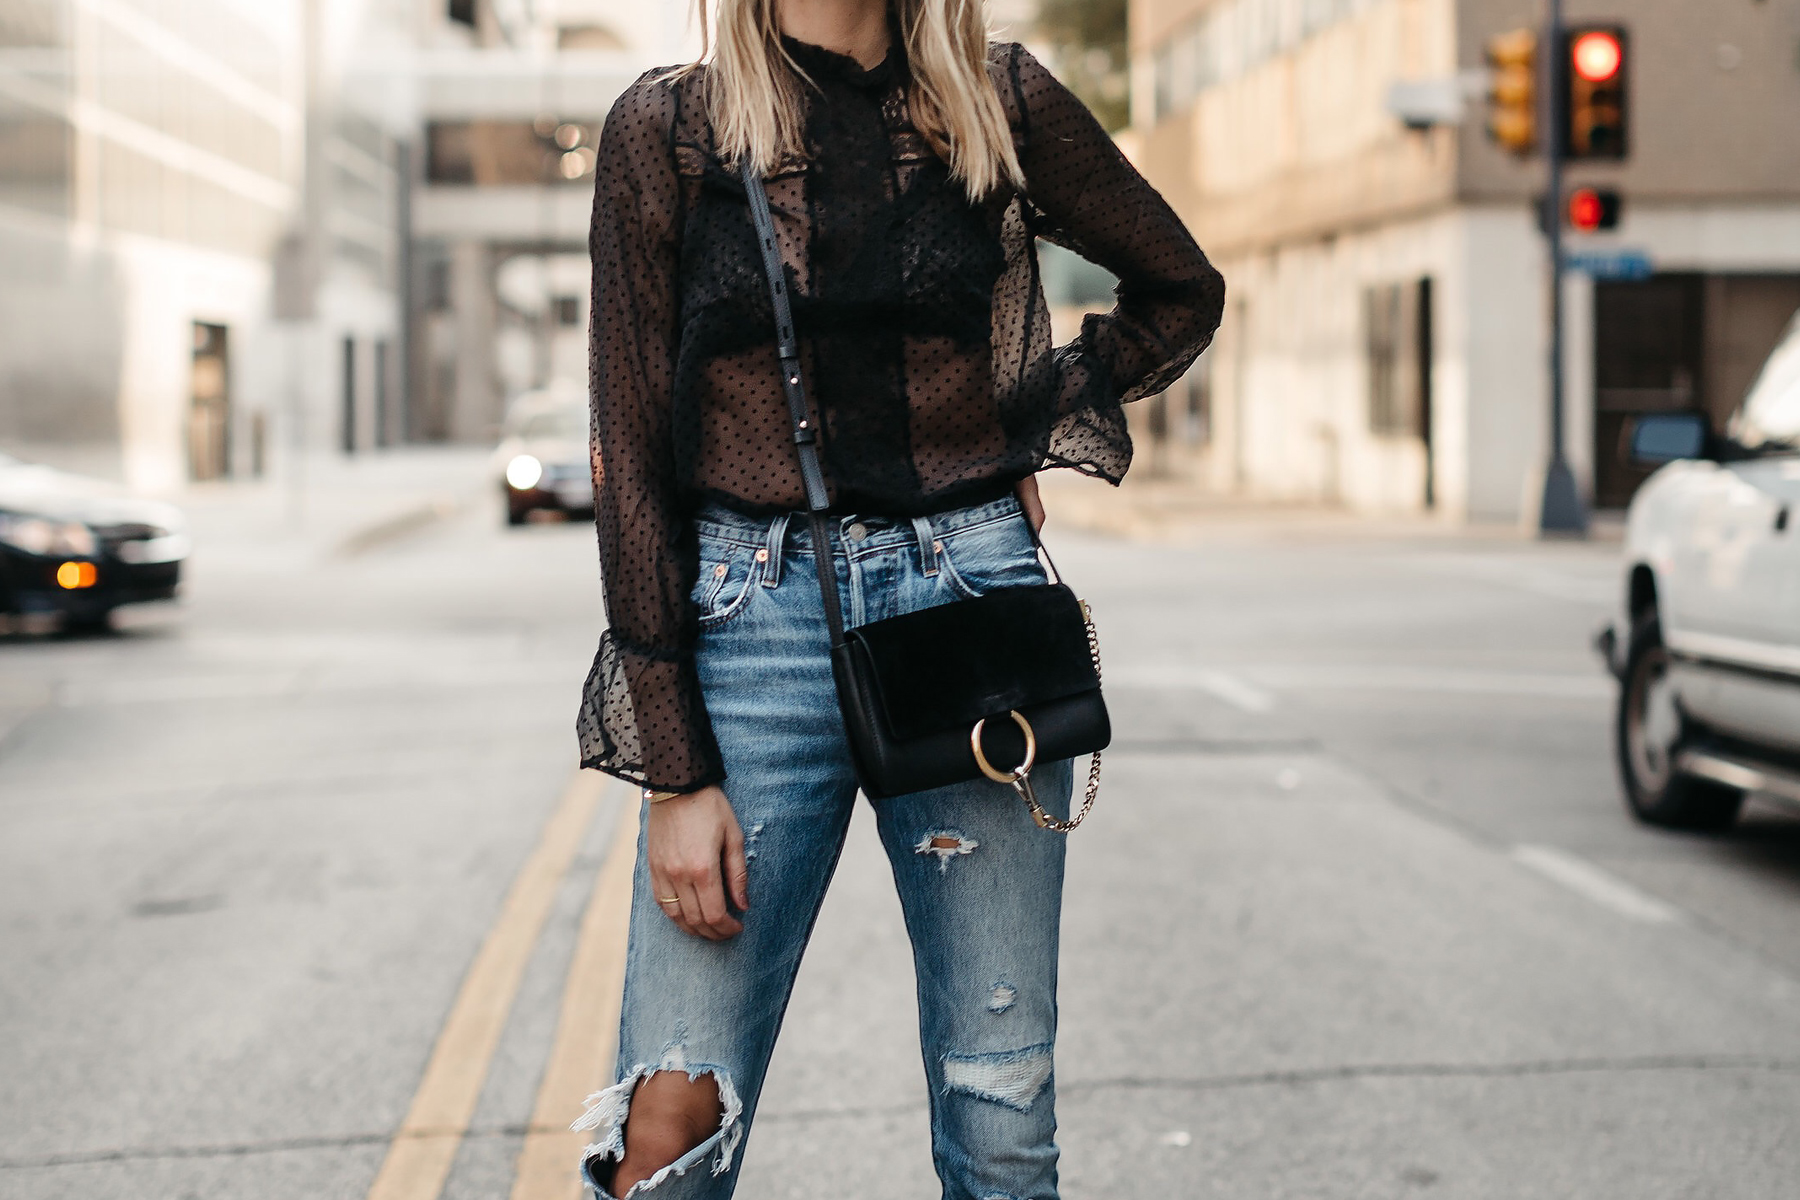 Anine Bing Black Lace Top Chloe Faye Black Handbag Denim Ripped Jeans Fashion Jackson Dallas Blogger Fashion Blogger Street Style